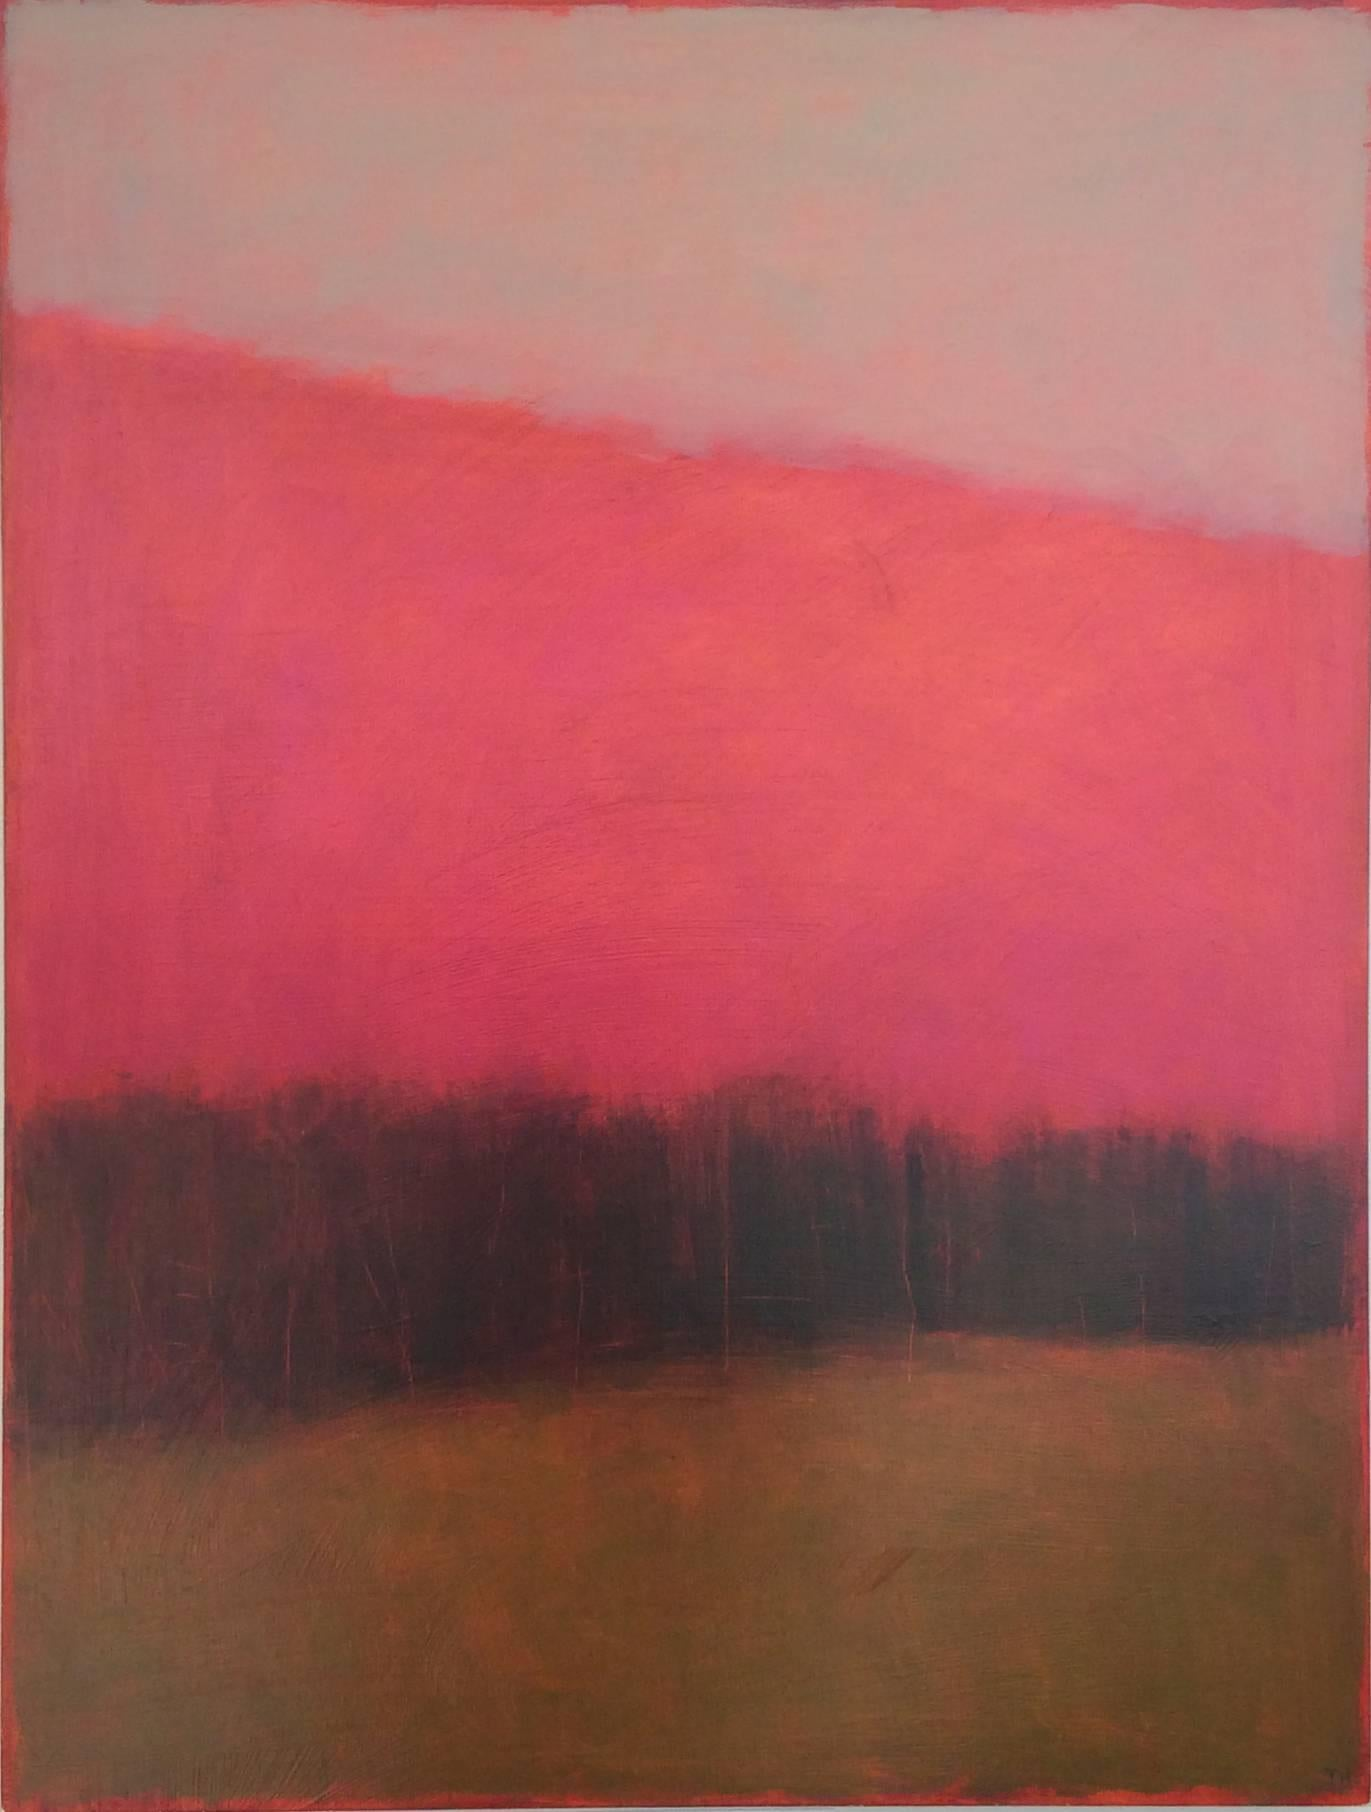 Rosy Hill (Contemporary, Minimal Abstract Landscape with Bright Magenta Skies)